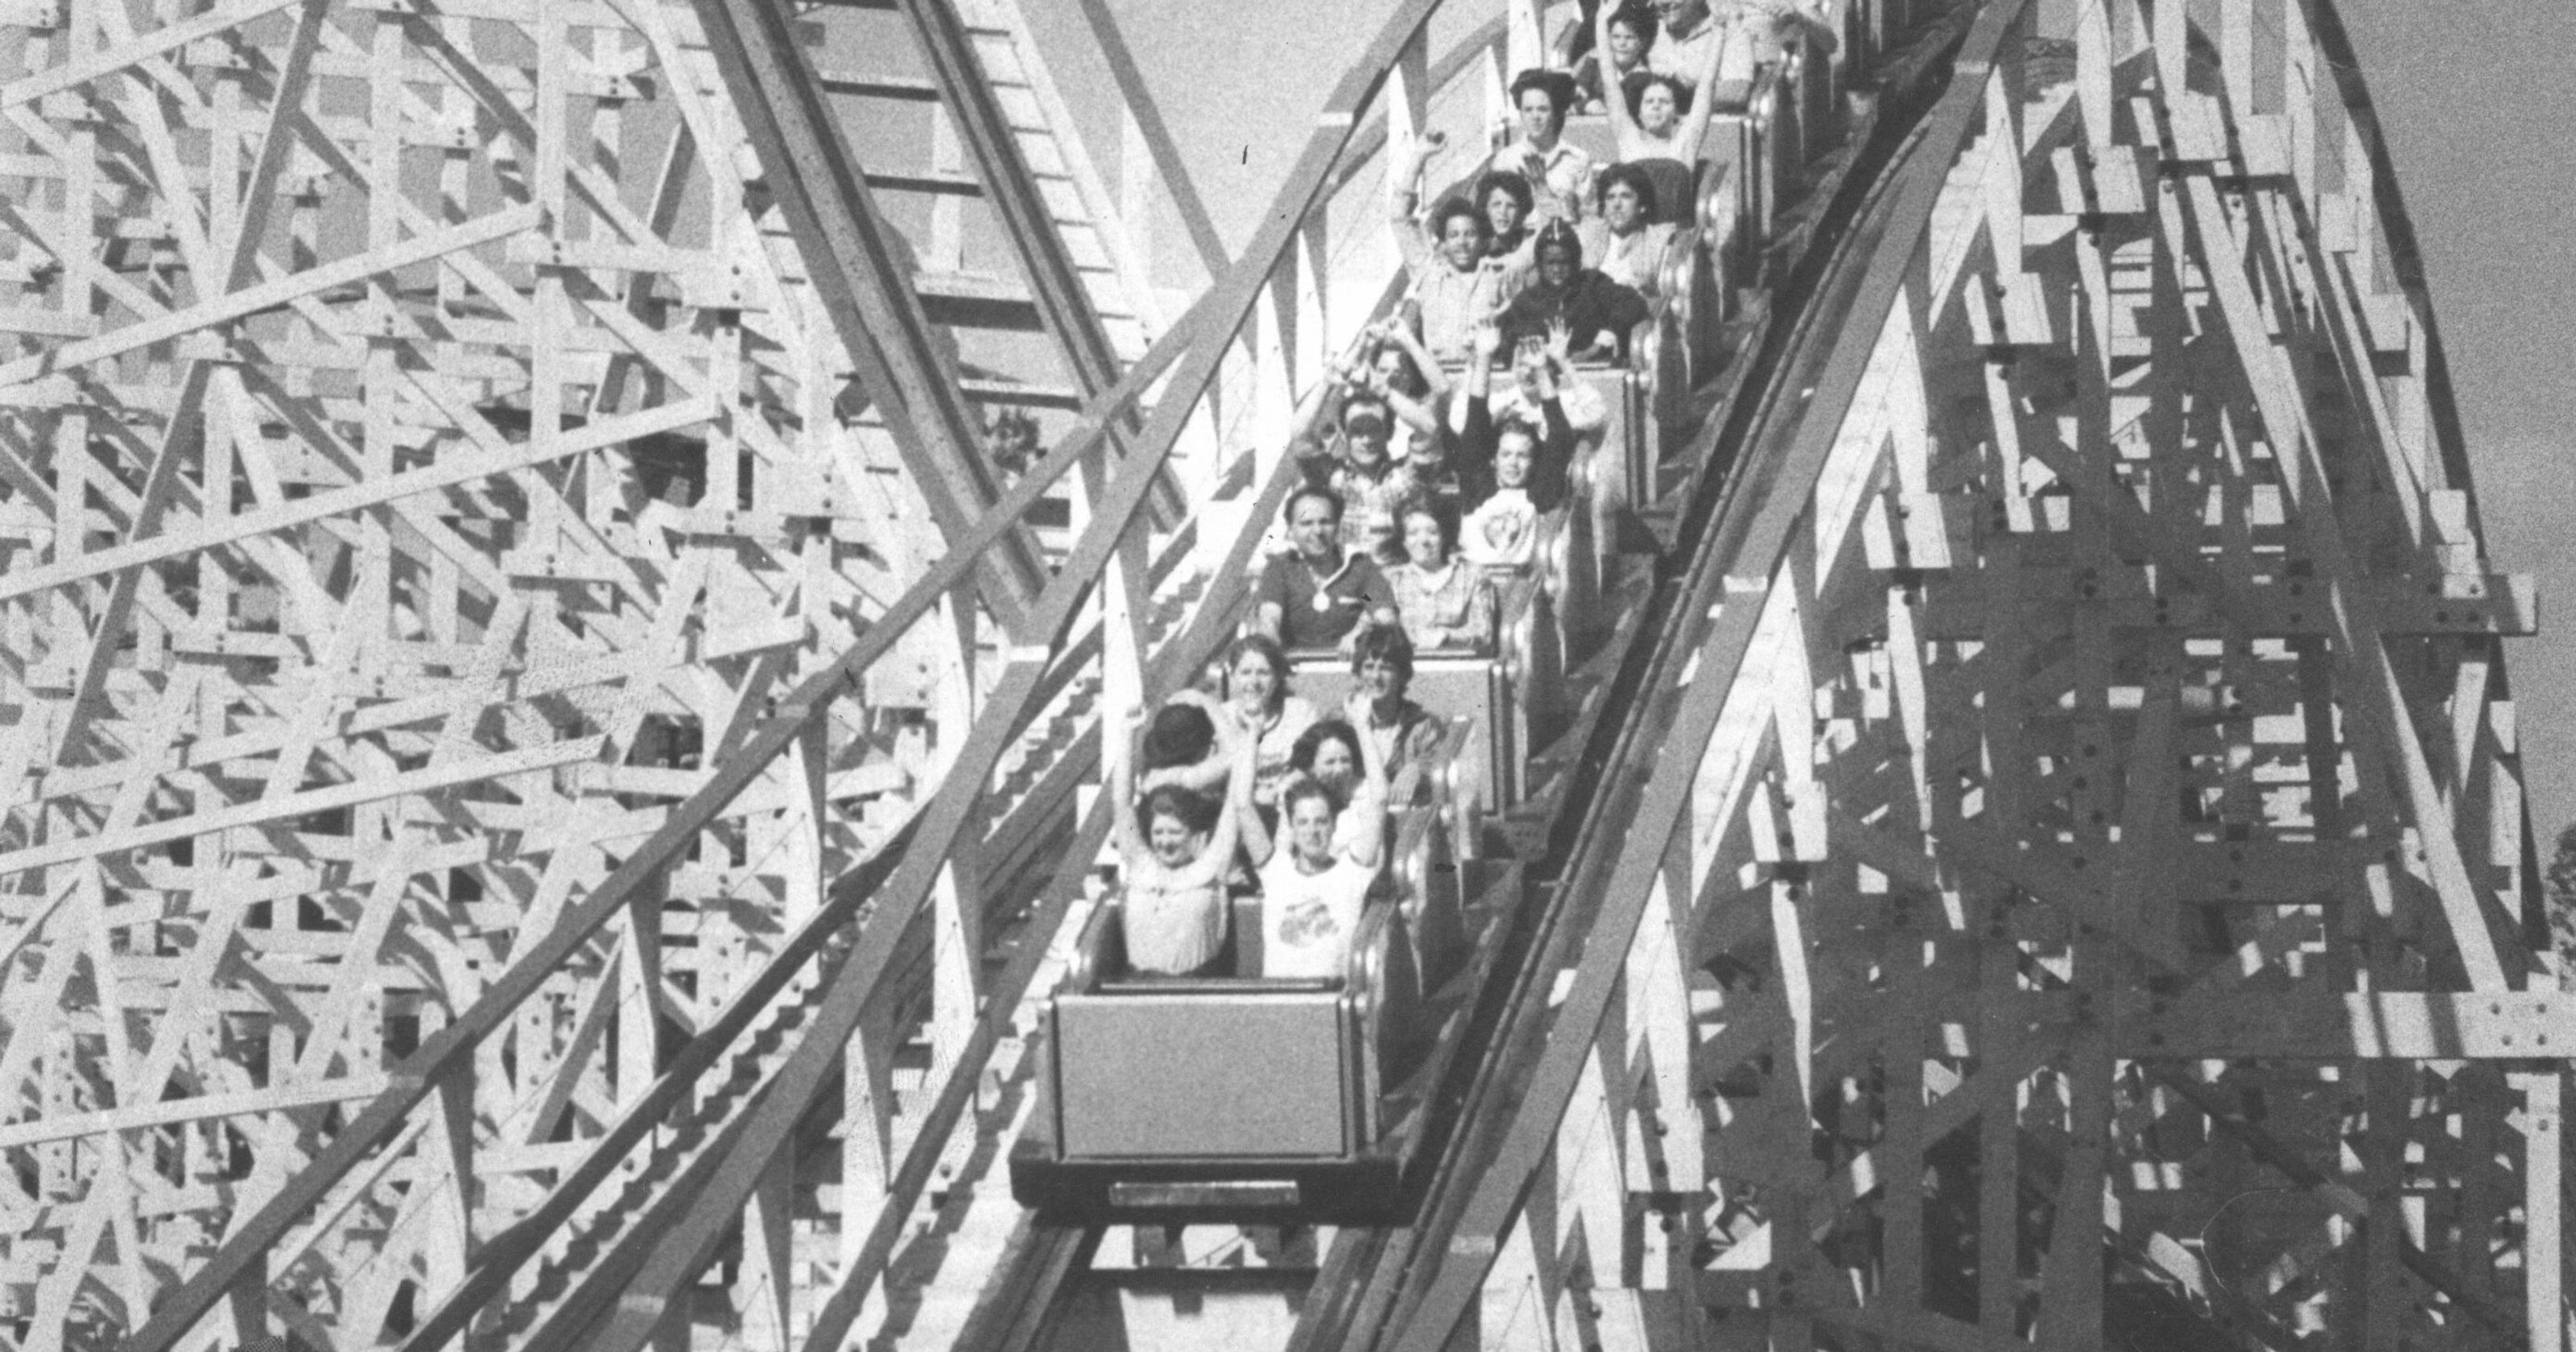 Relive the amusement park's thrilling legacy